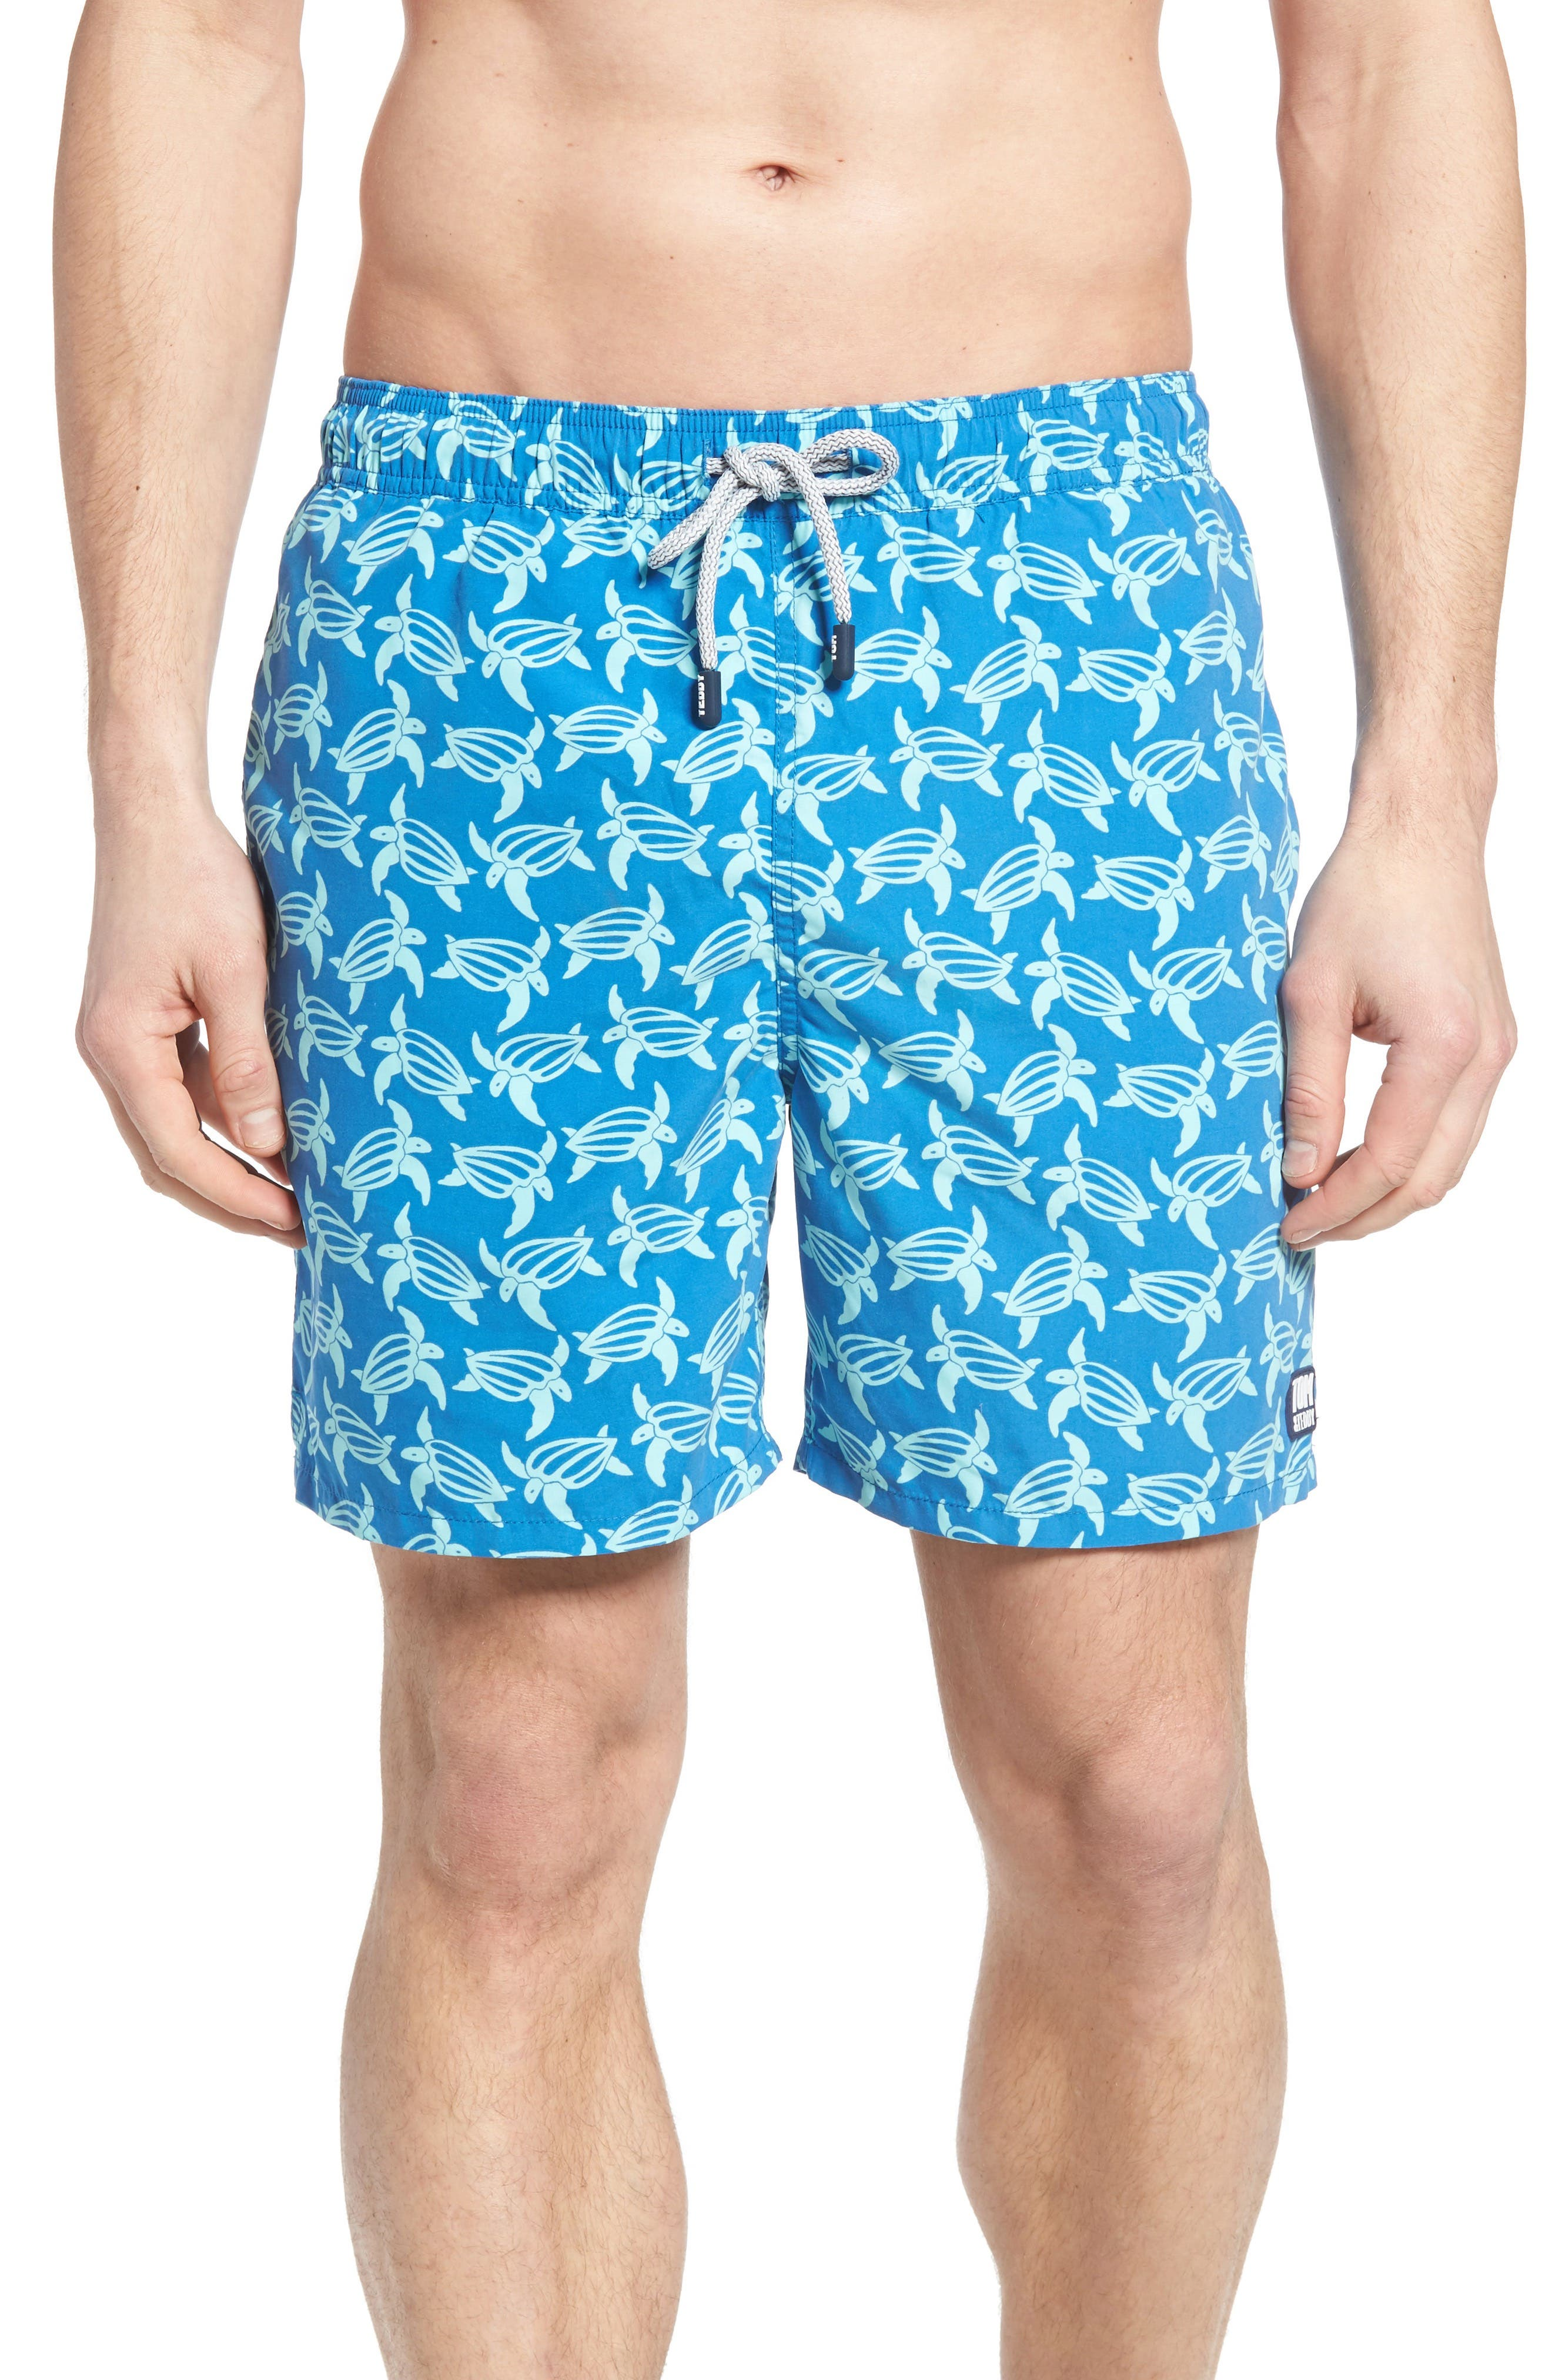 Turtle Print Swim Trunks,                         Main,                         color, MID BLUE AND SKY